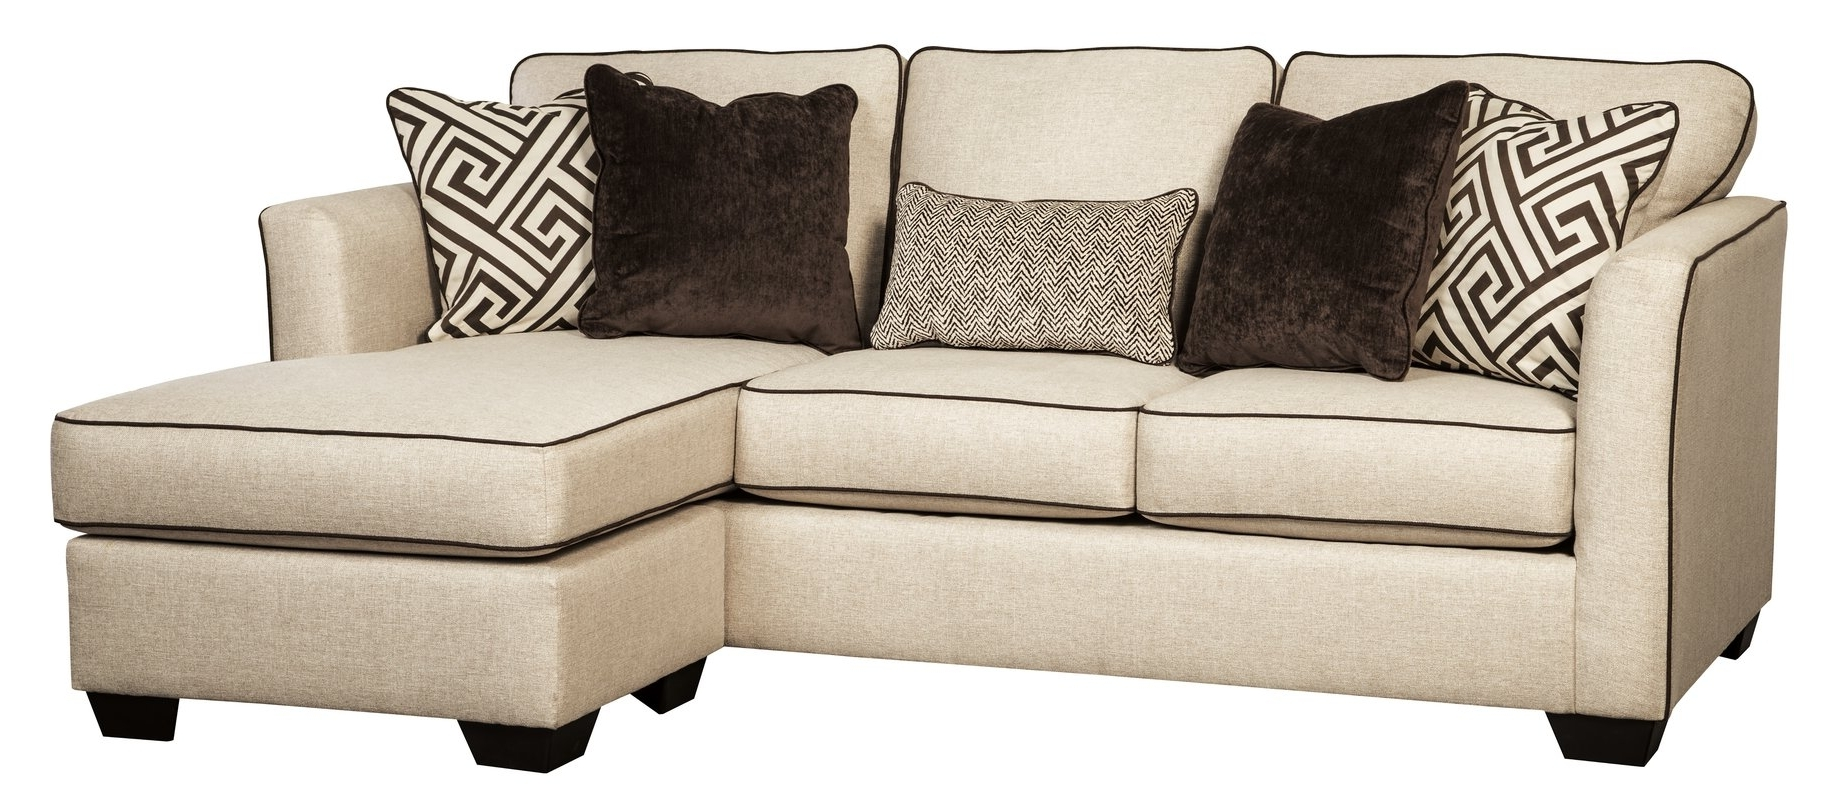 Chaise Settees Regarding Well Known Benchcraft Carlinworth Sofa Chaise & Reviews (View 8 of 15)